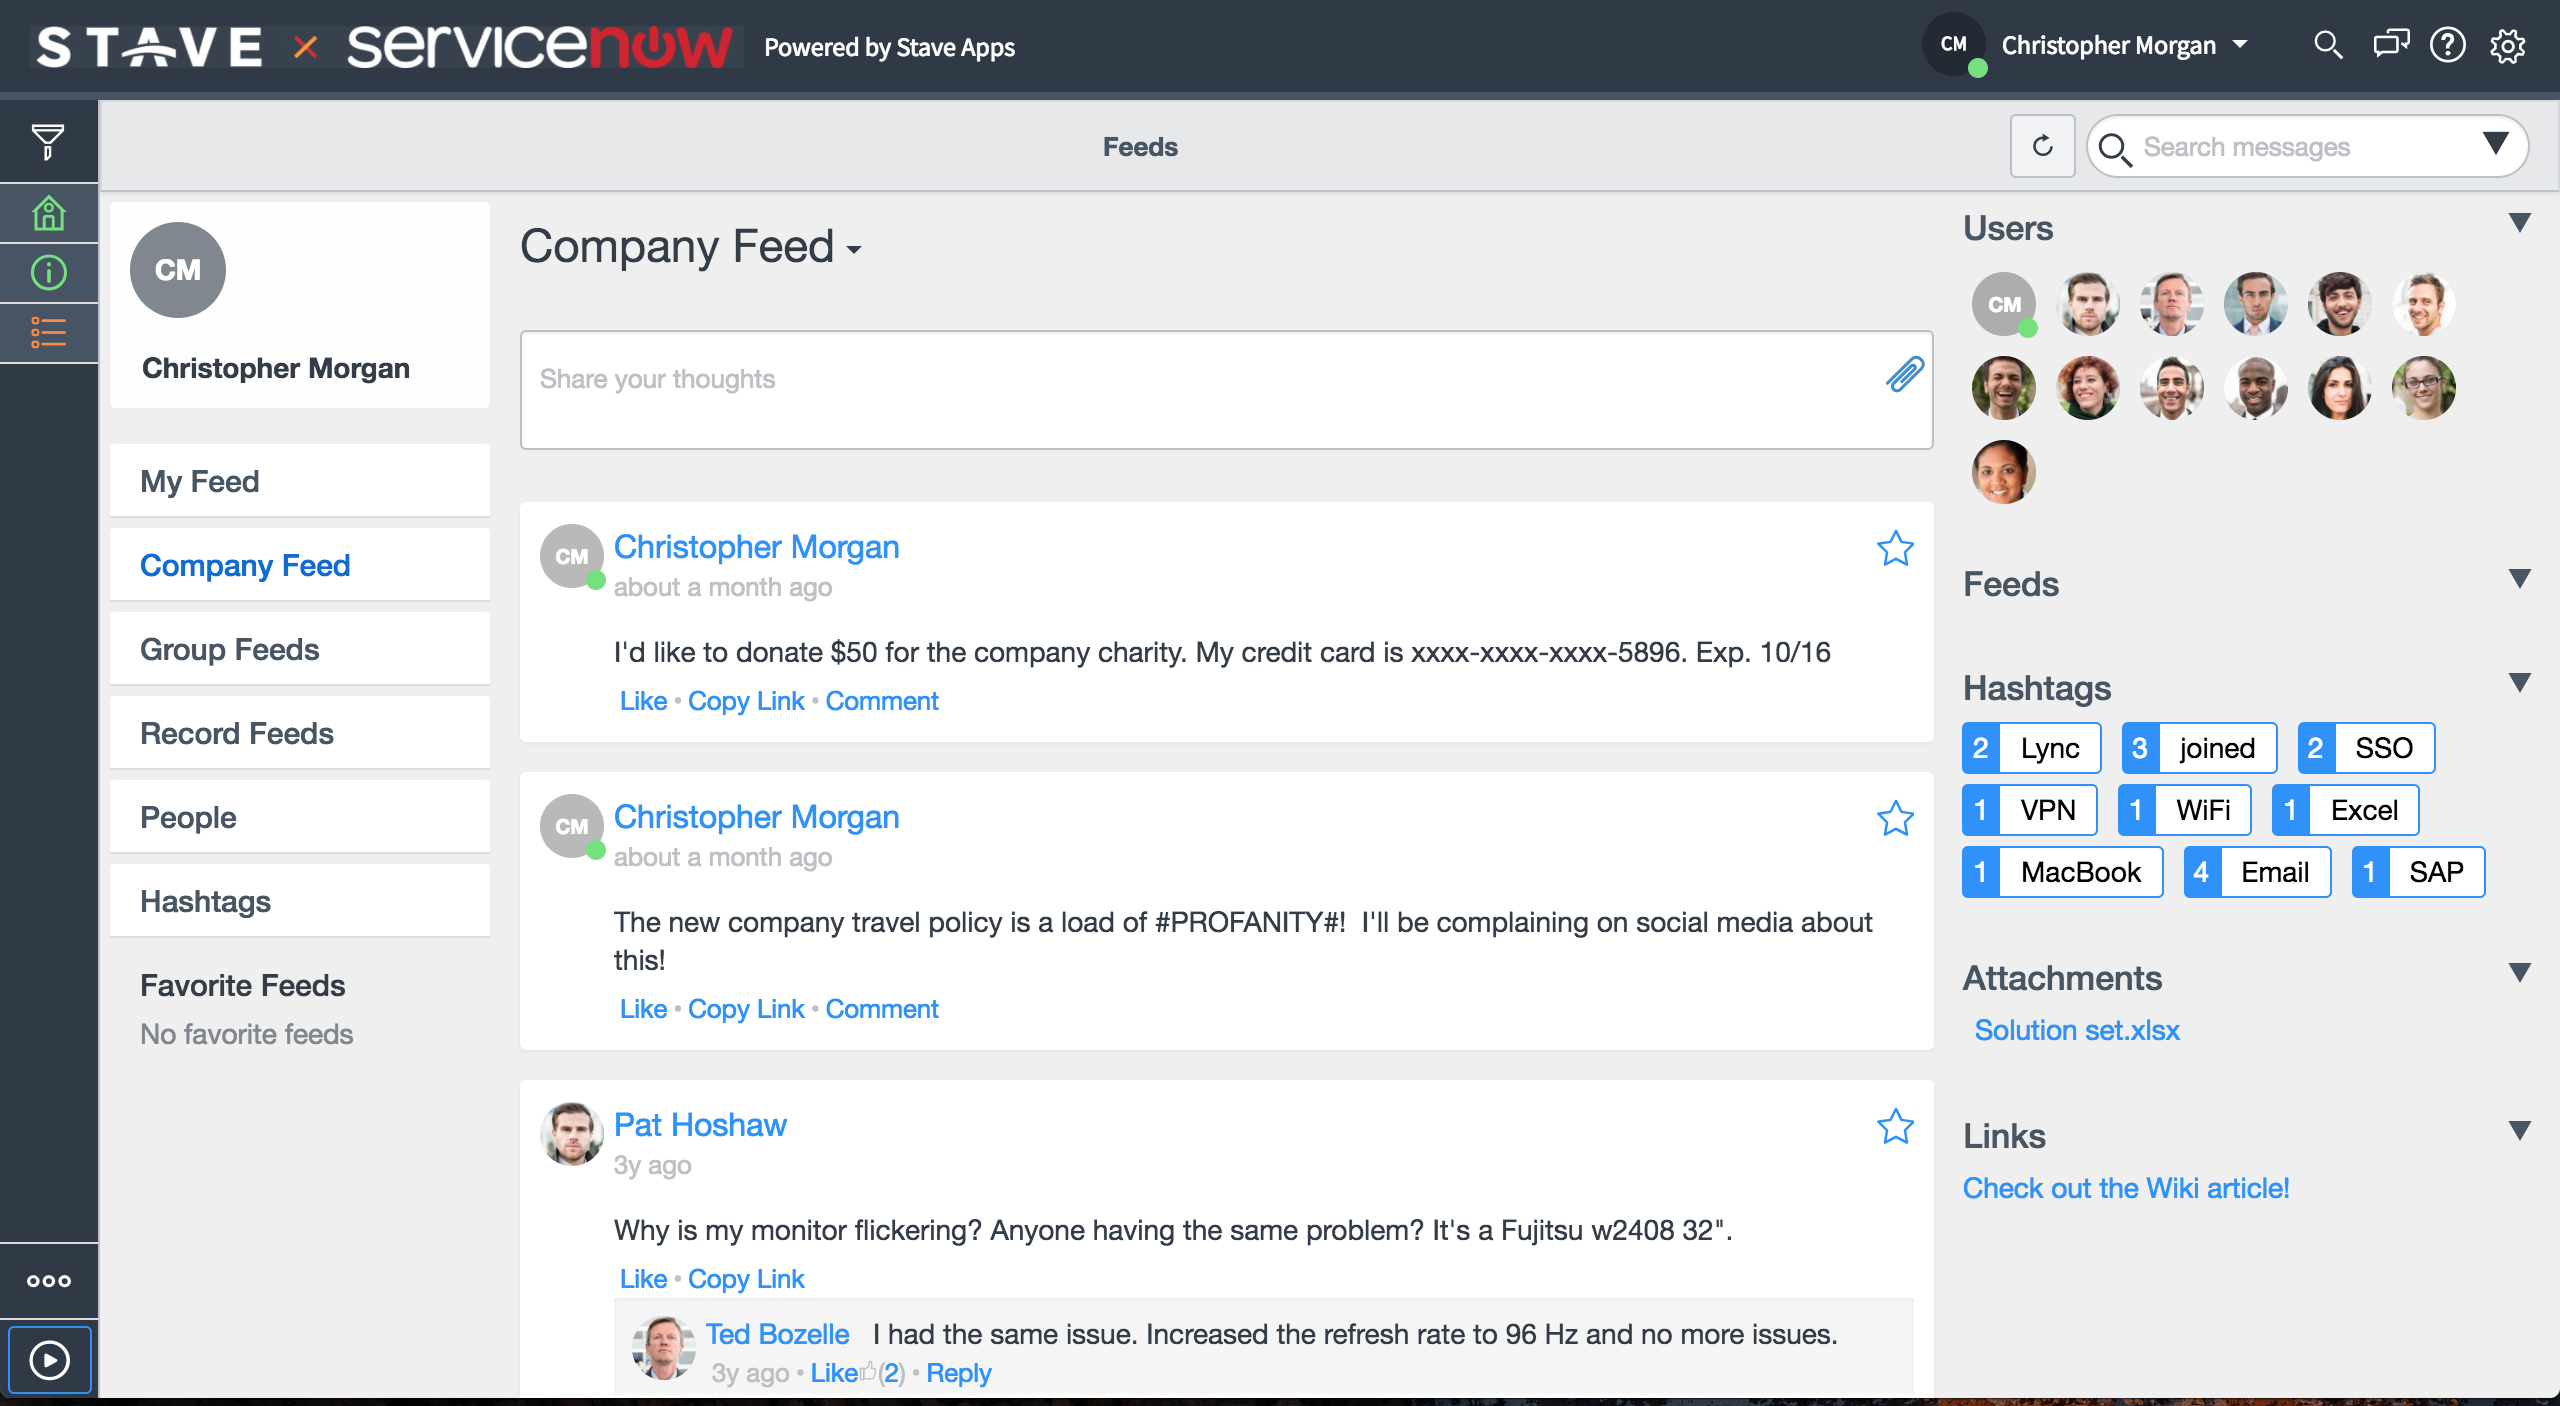 Data Tools on Servicenow powered by Stave